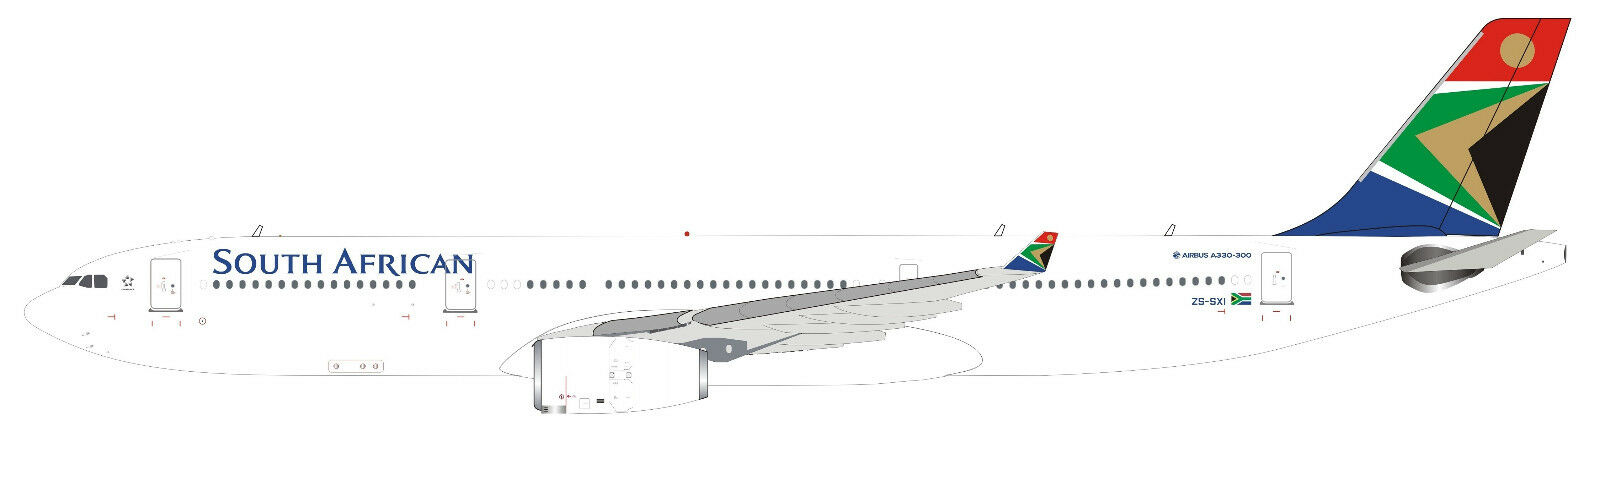 INFLIGHT 200 IF333SA0818 1 200 SOUTH AFRICAN AIRWAYS AIRBUS A330-300 ZS-SXI